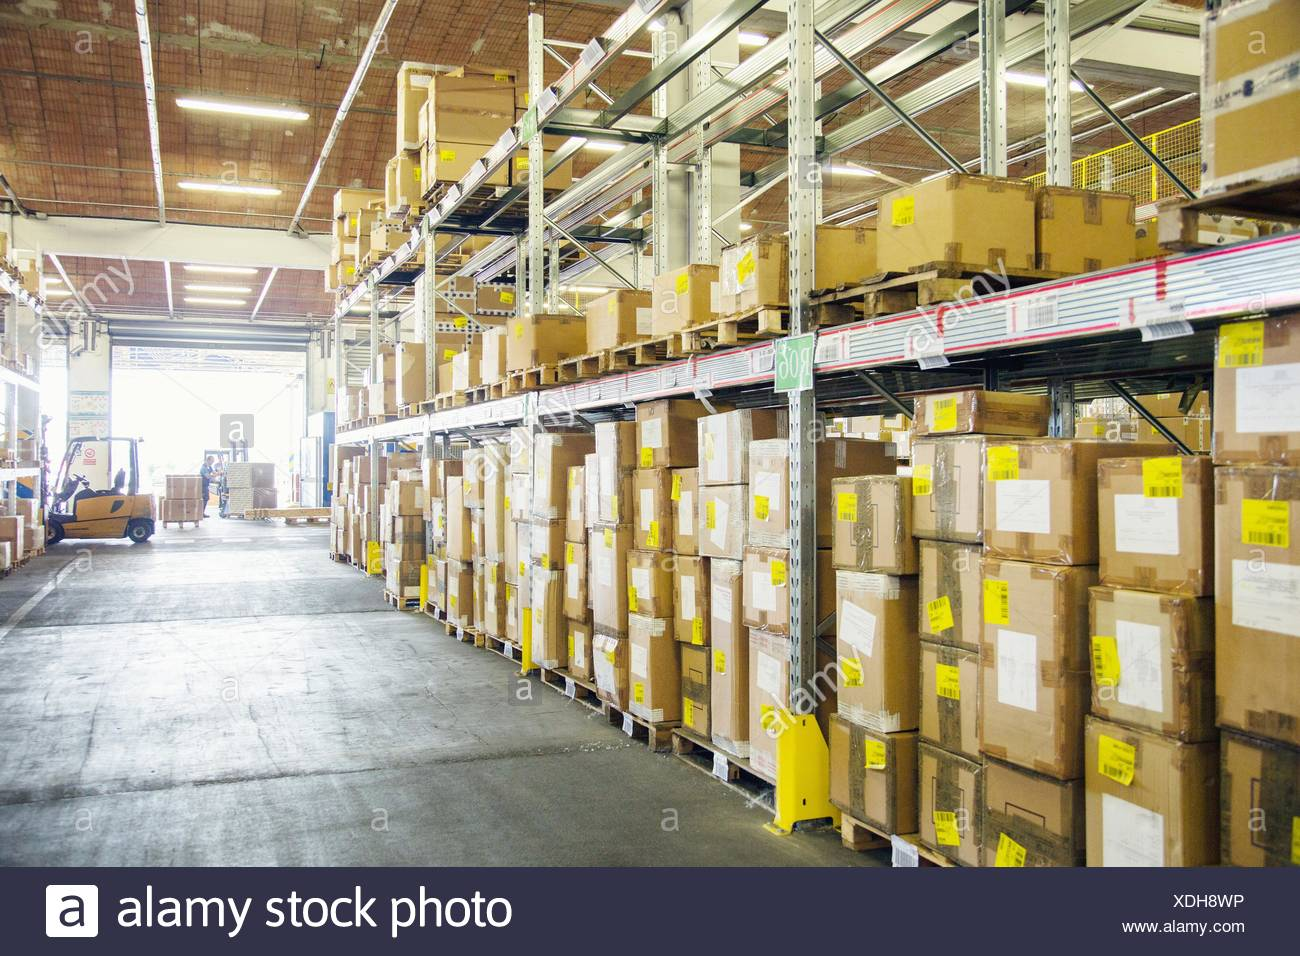 Forklift trucks working in distribution warehouse aisle - Stock Image